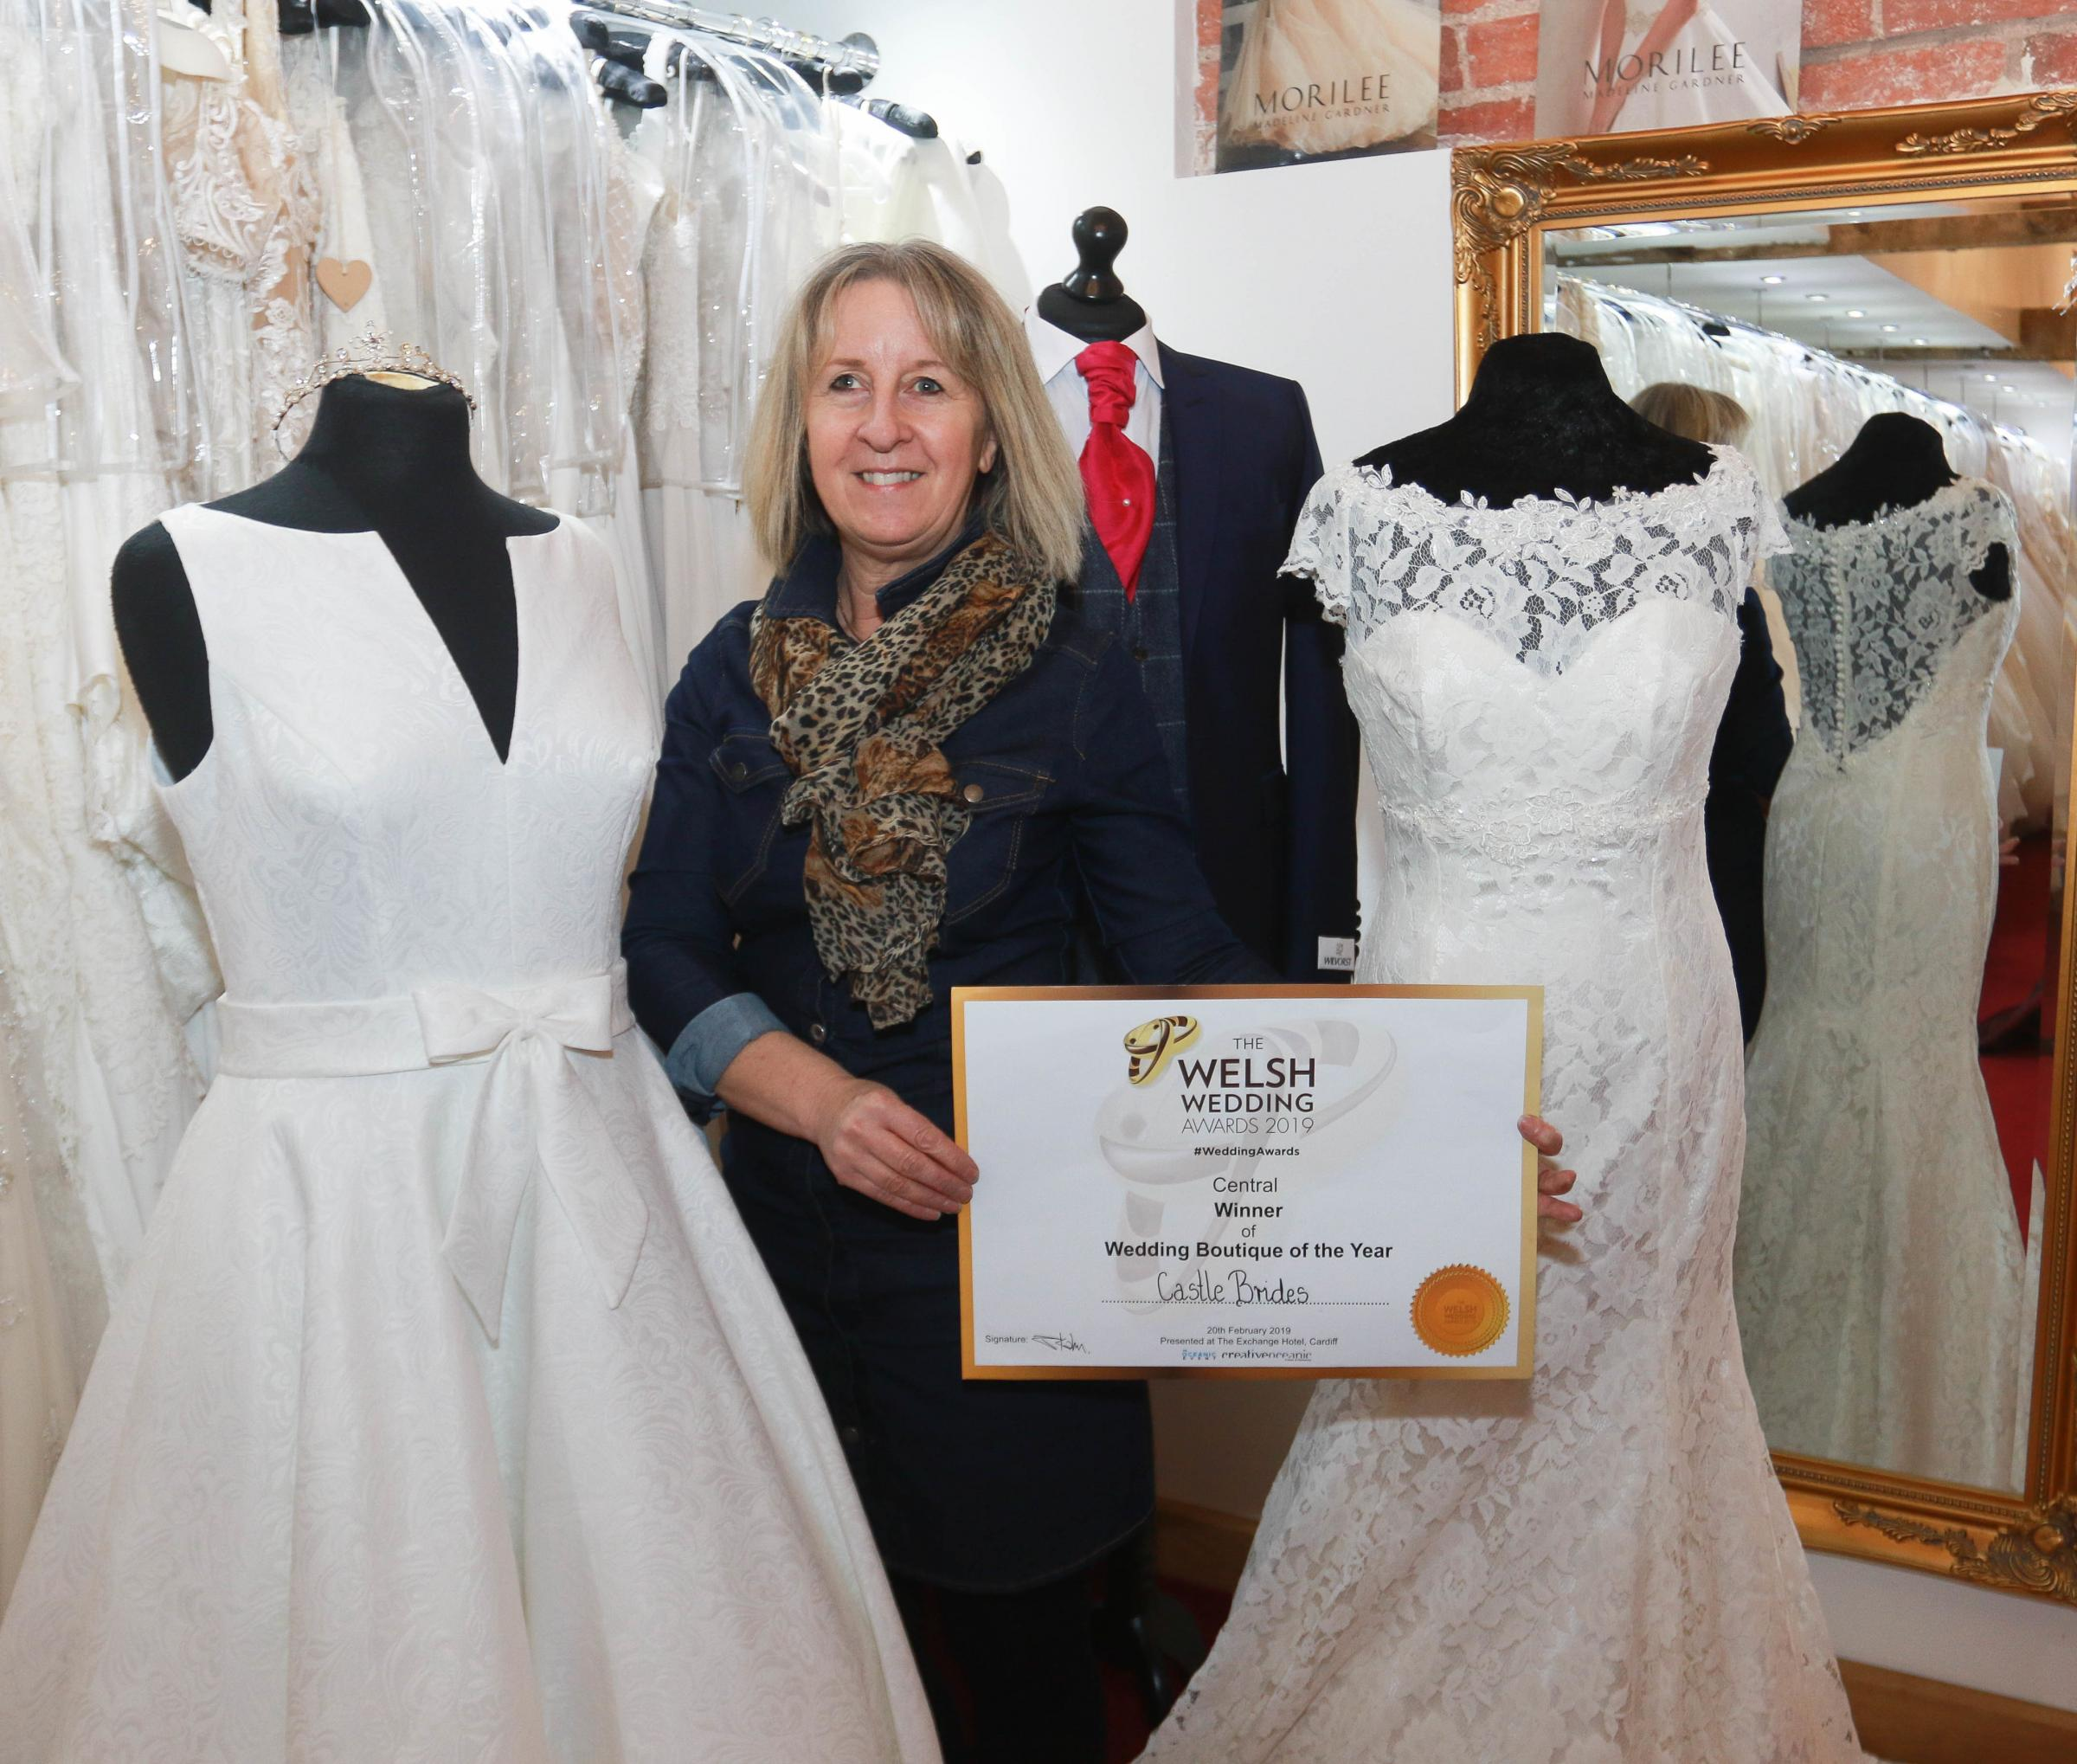 Angela Jones, of Castle Brides on the Powys/ Shropshire border, won Wedding Boutique of the Year at the Welsh Wedding Awards 2019. Picture: Phil Blagg (PB119-4)